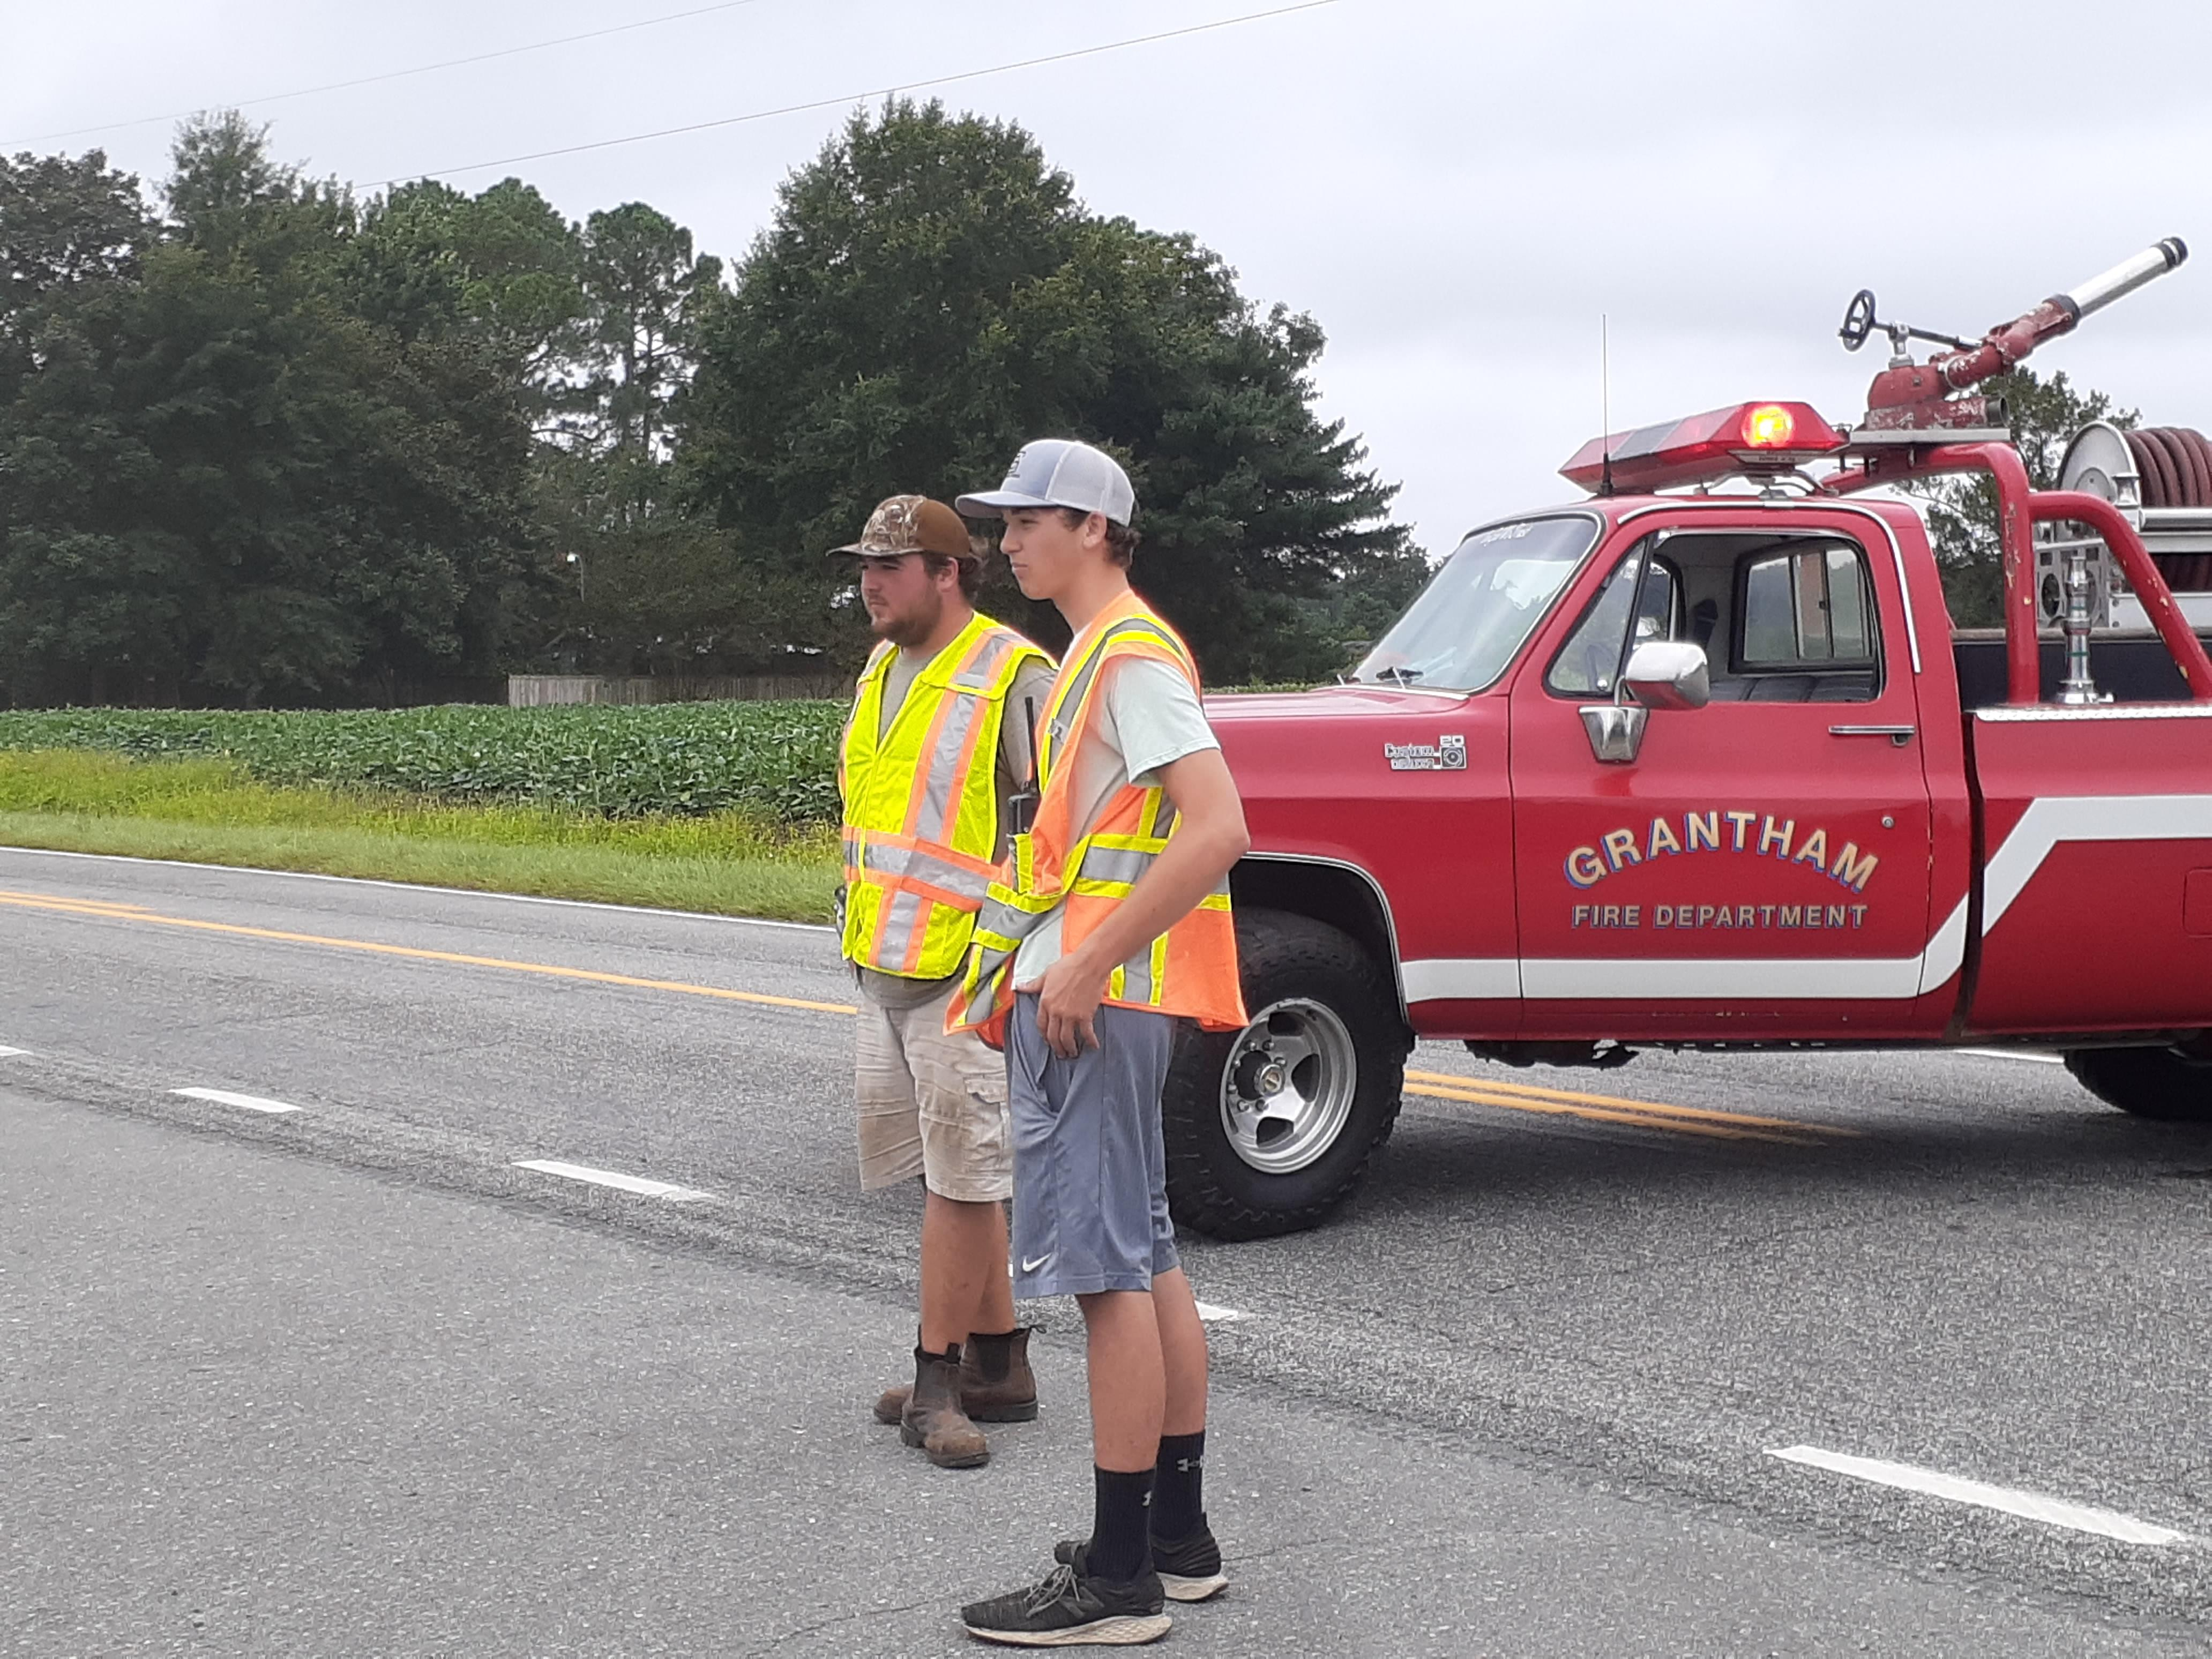 Downed Power Line Closes Grantham School Road